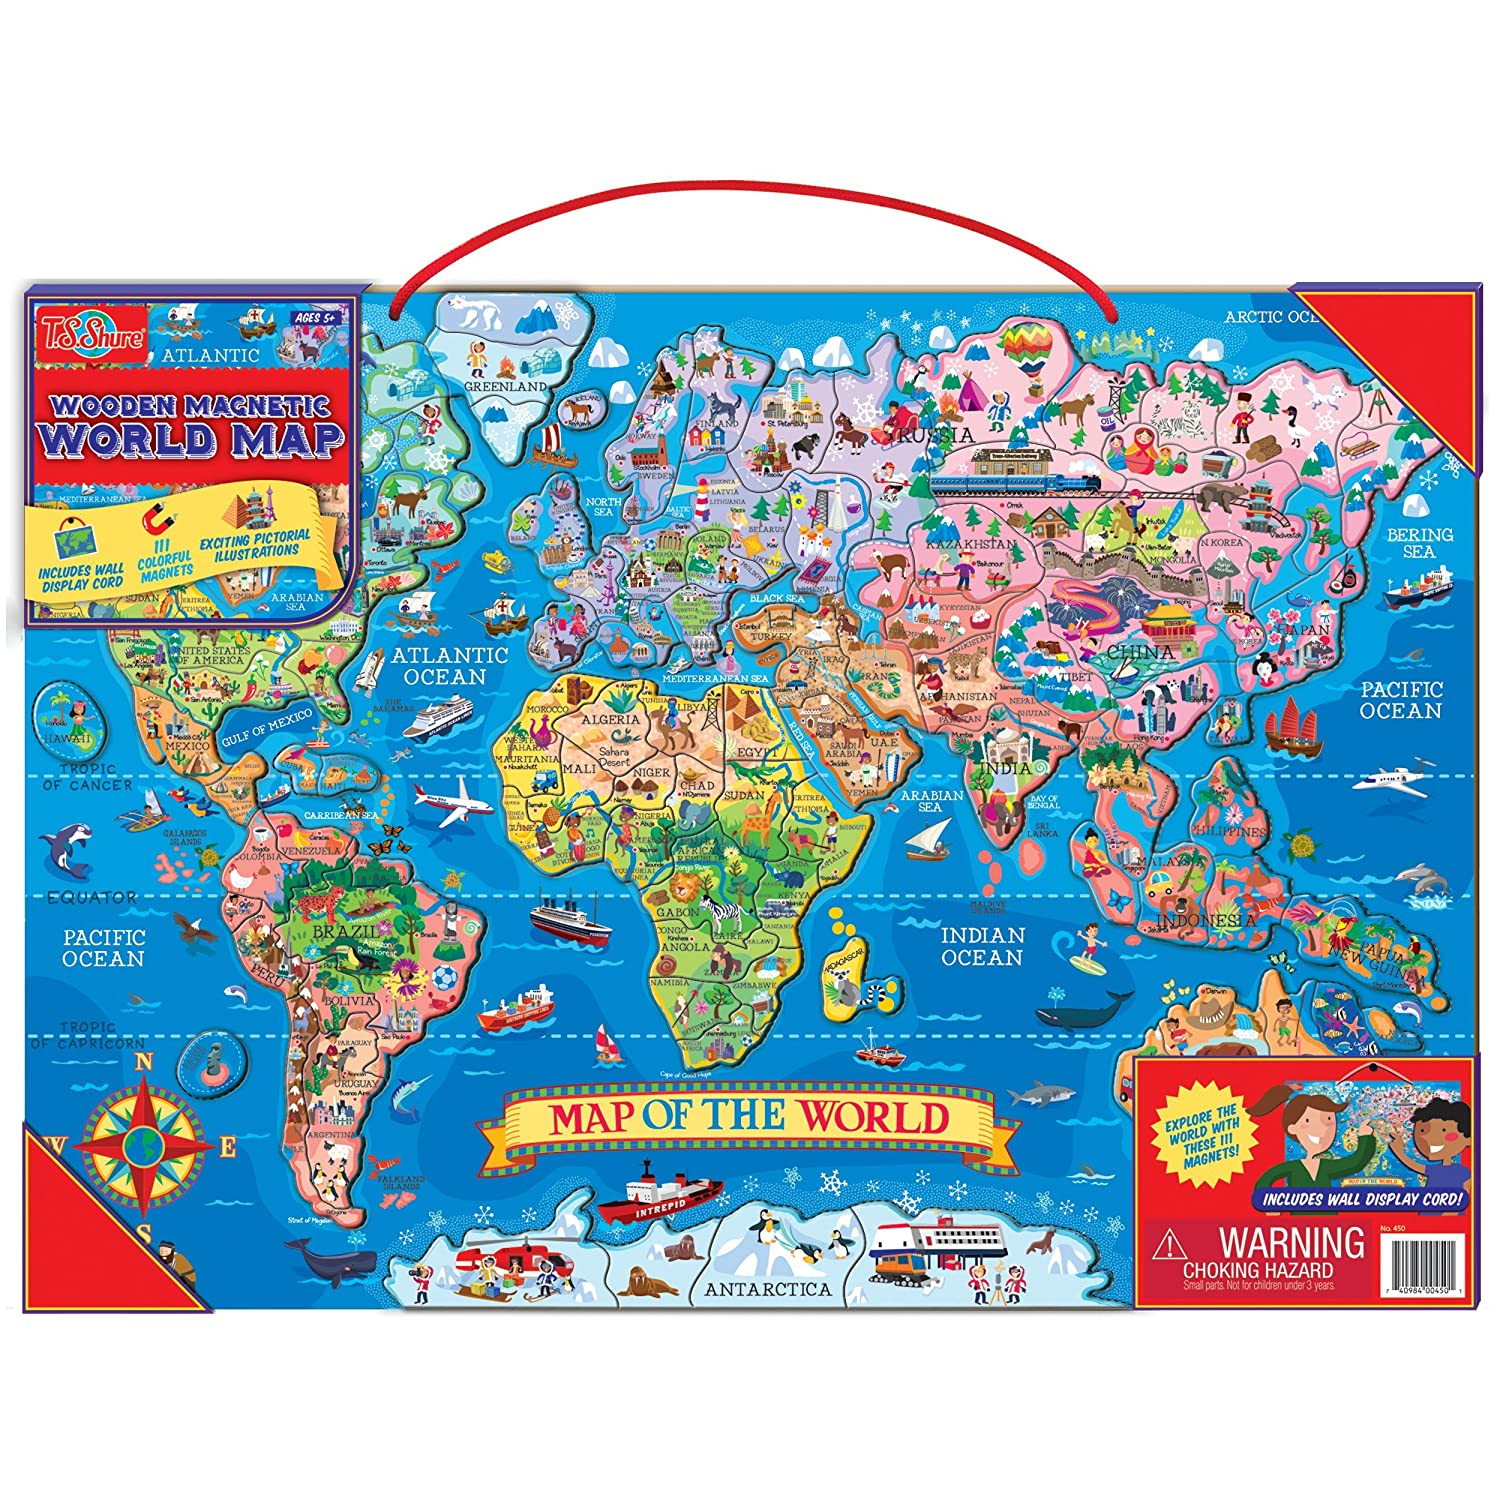 Amazoncom TS Shure Wooden Magnetic World Map Puzzle Toys Games - World maps online